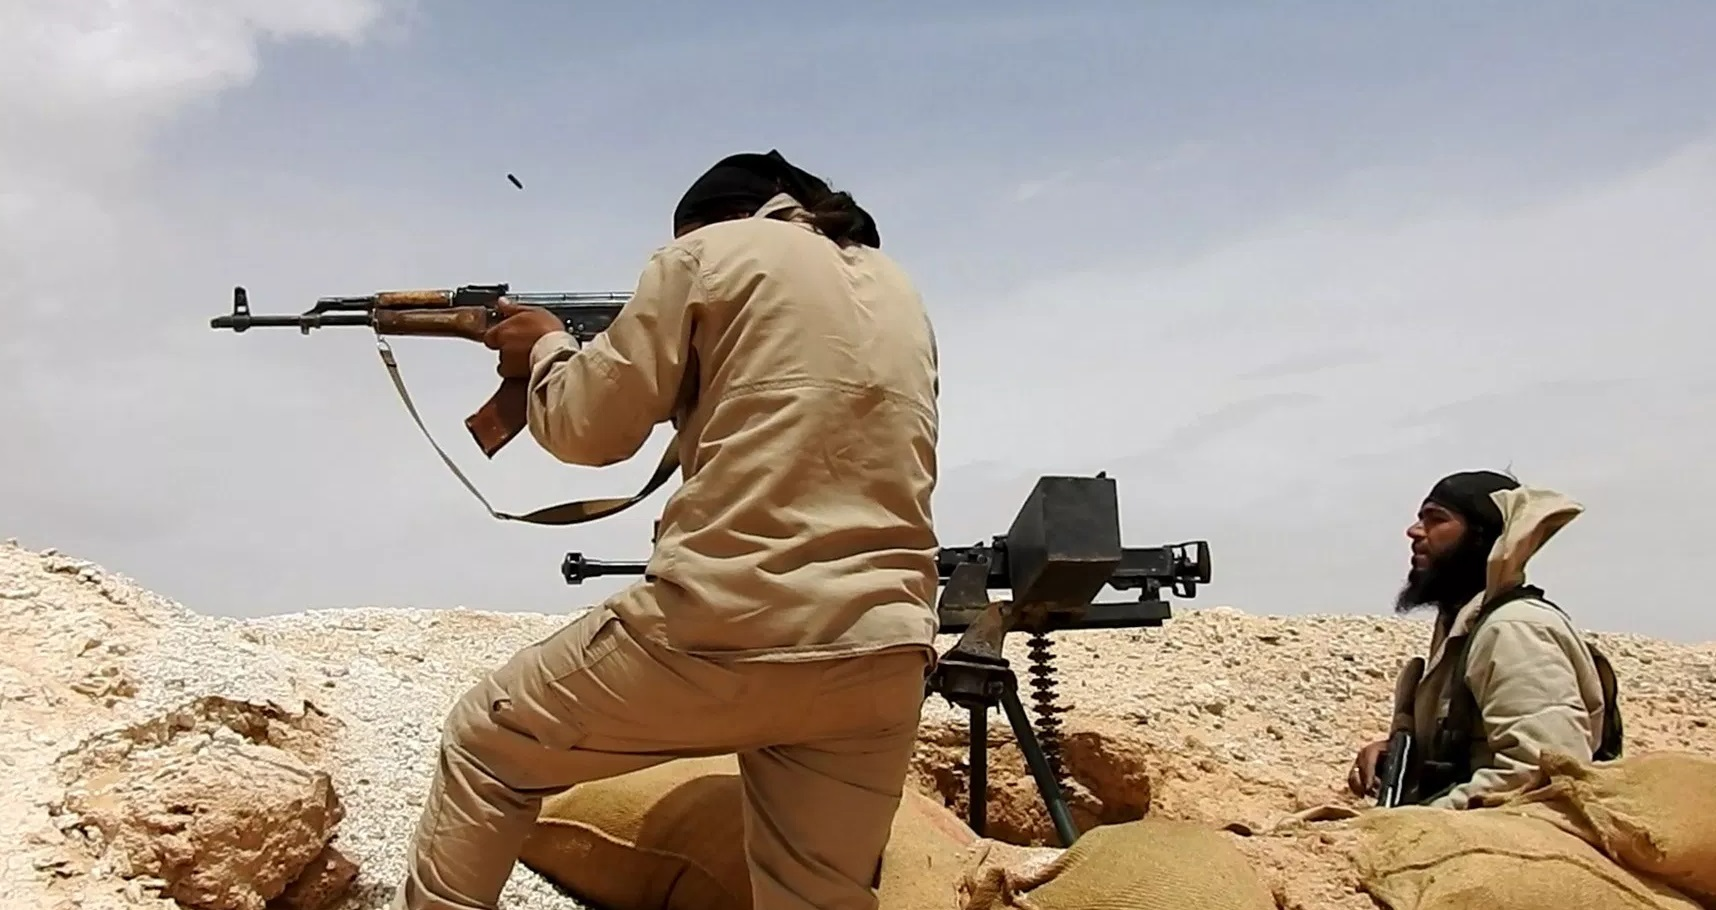 ISIS Ambushes Unit Of Syrian Army Southeast Of Palmyra, Several Soldiers Killed And Injured